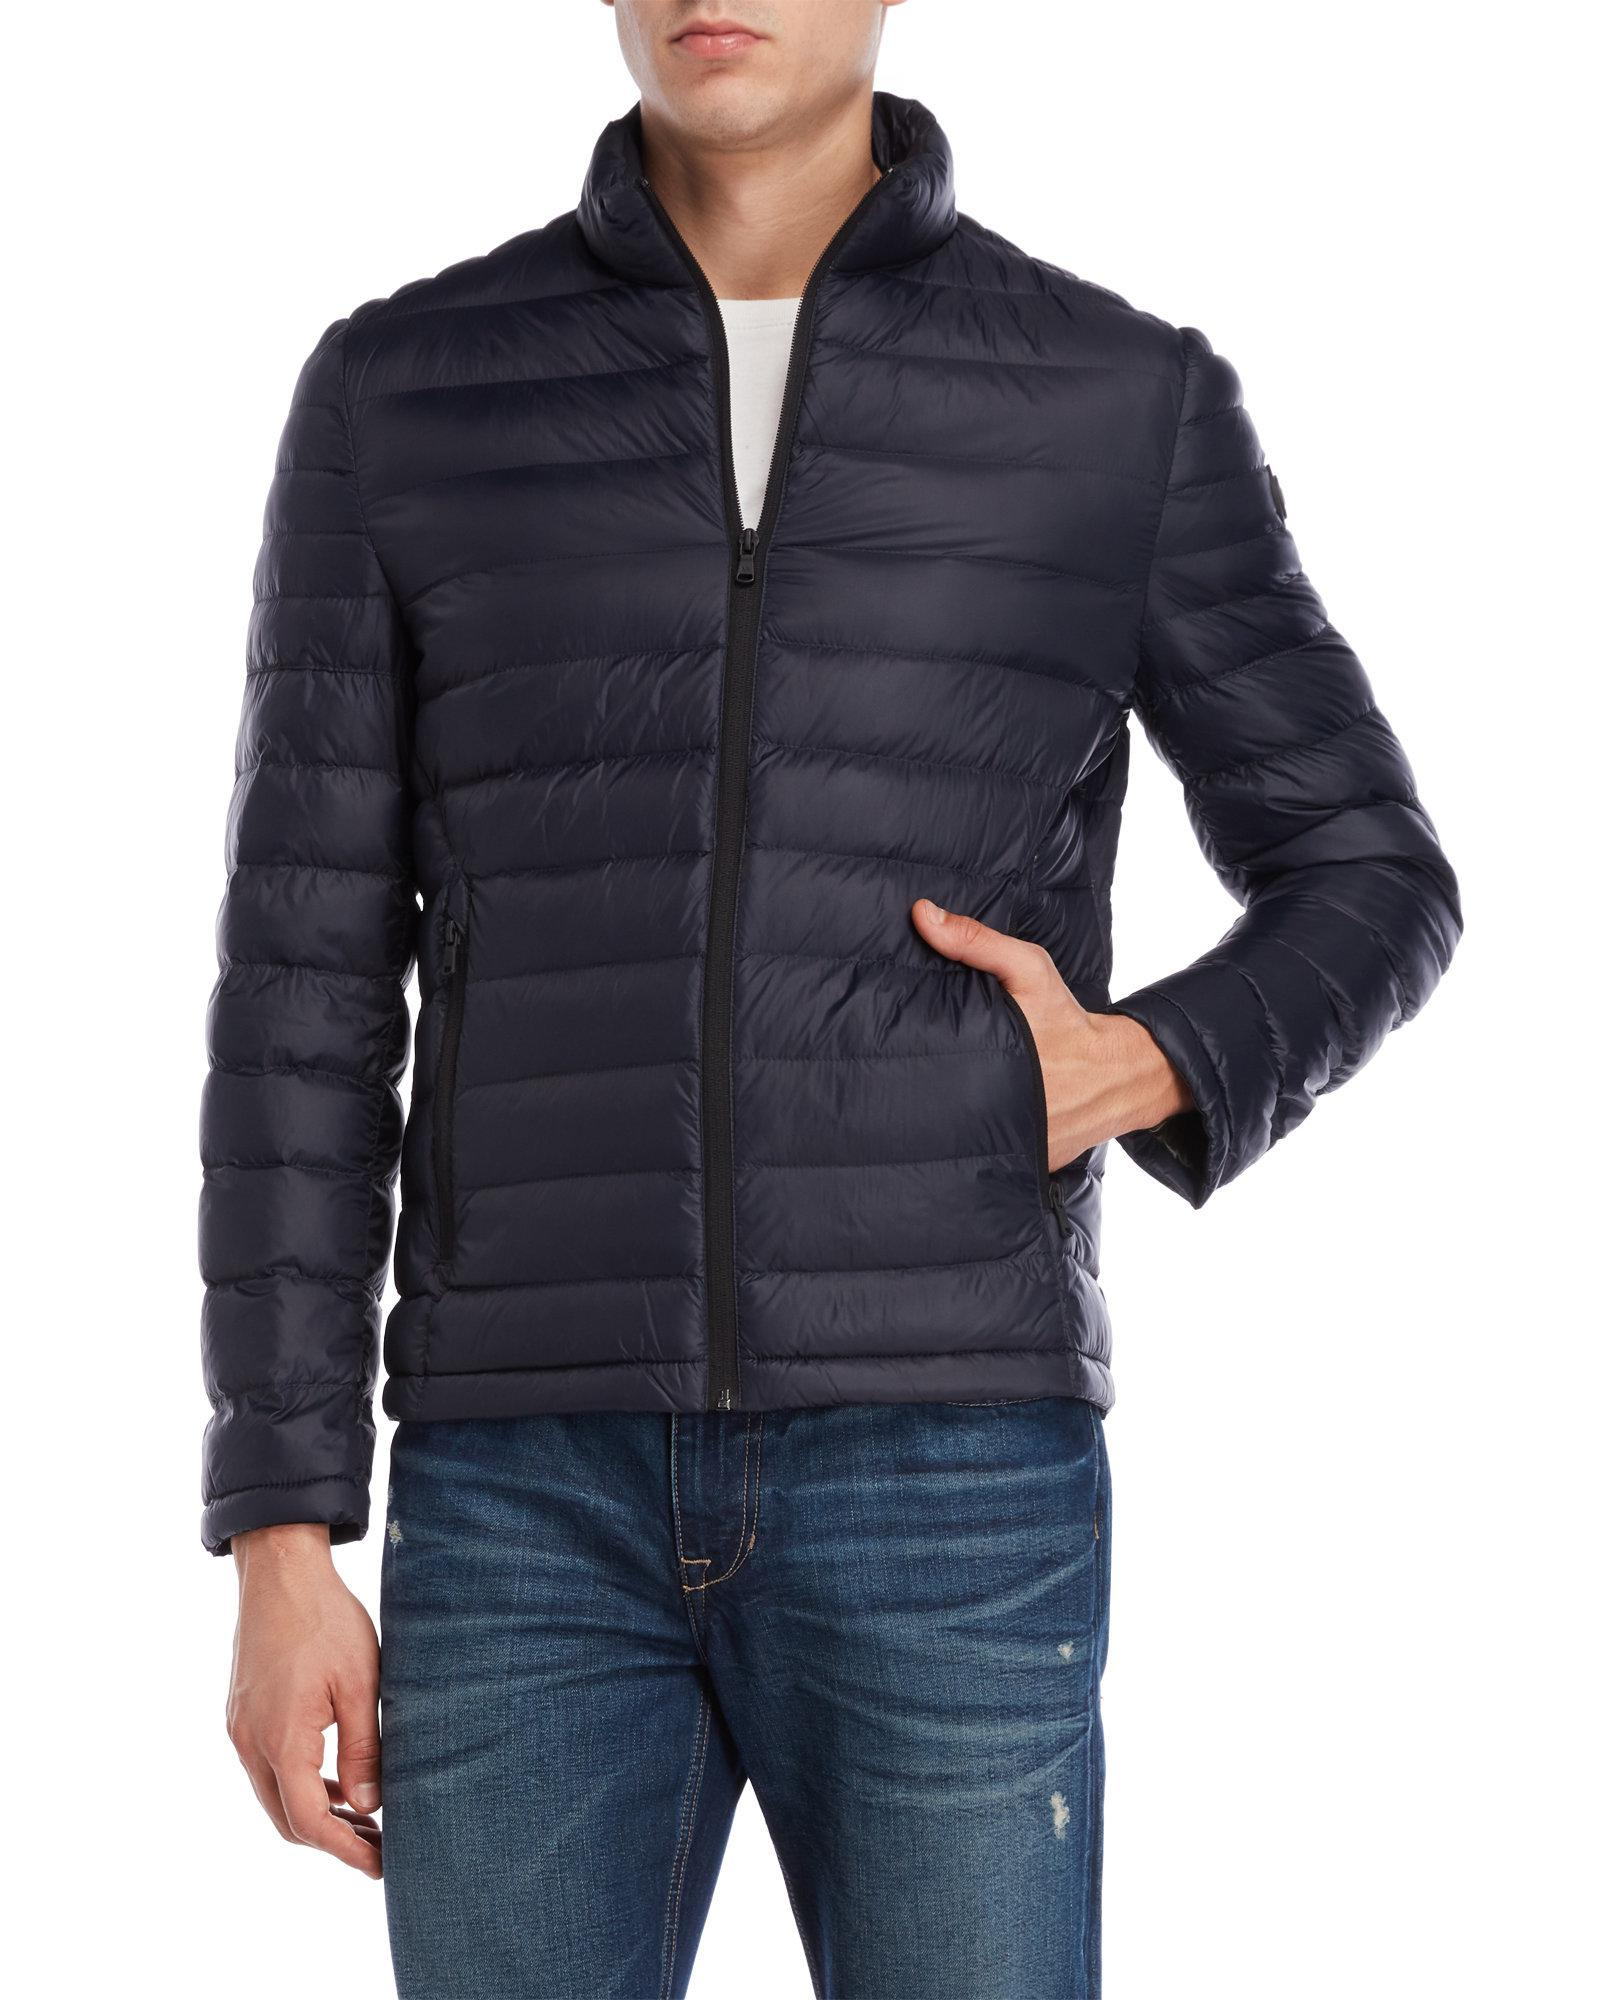 ef3bef9bc33e Lyst - Michael Kors Quilted Down Jacket in Blue for Men